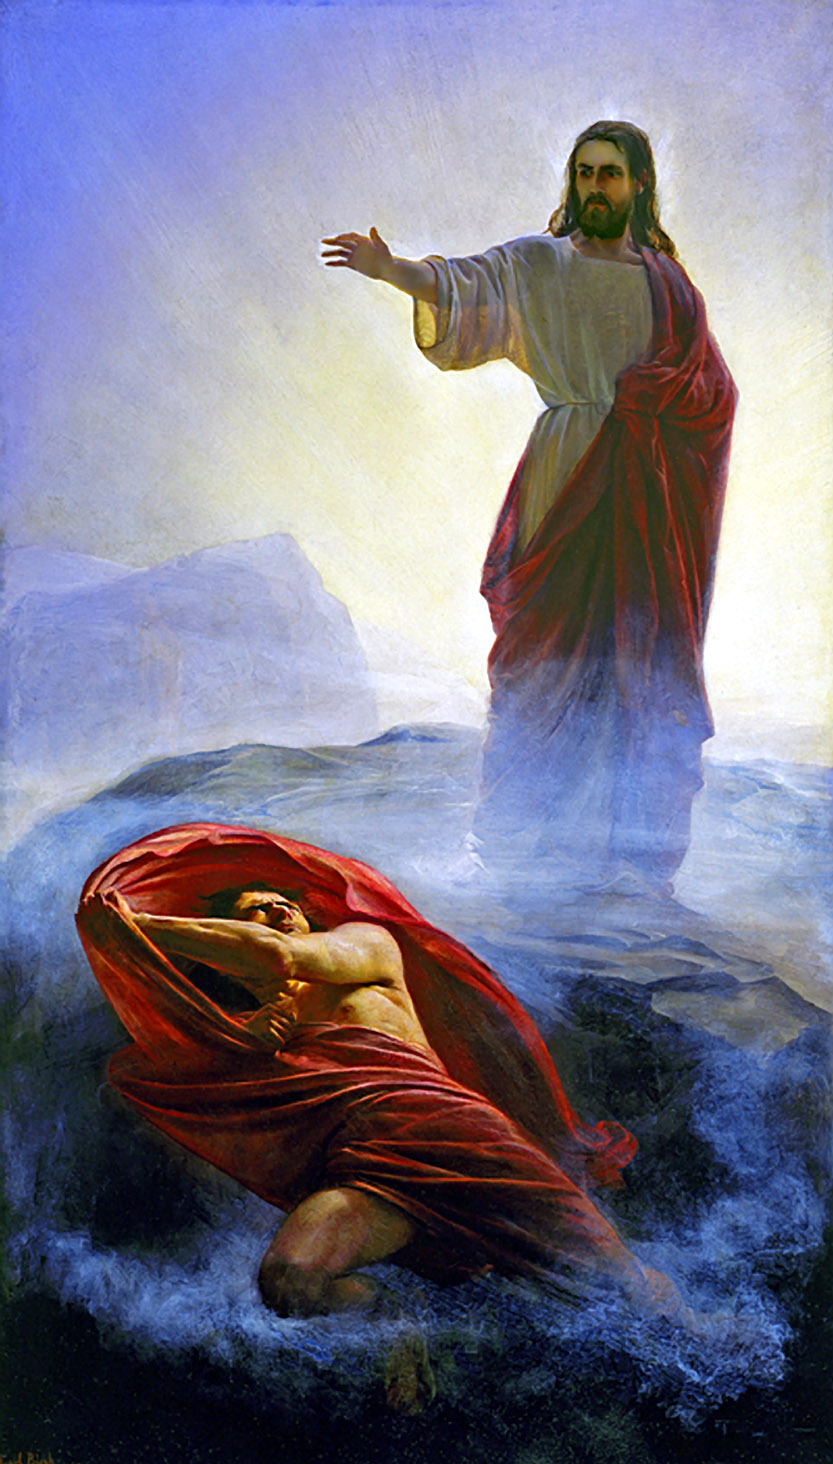 Filecarl Heinrich Bloch Jesus Temptedjpg Wikimedia Commons